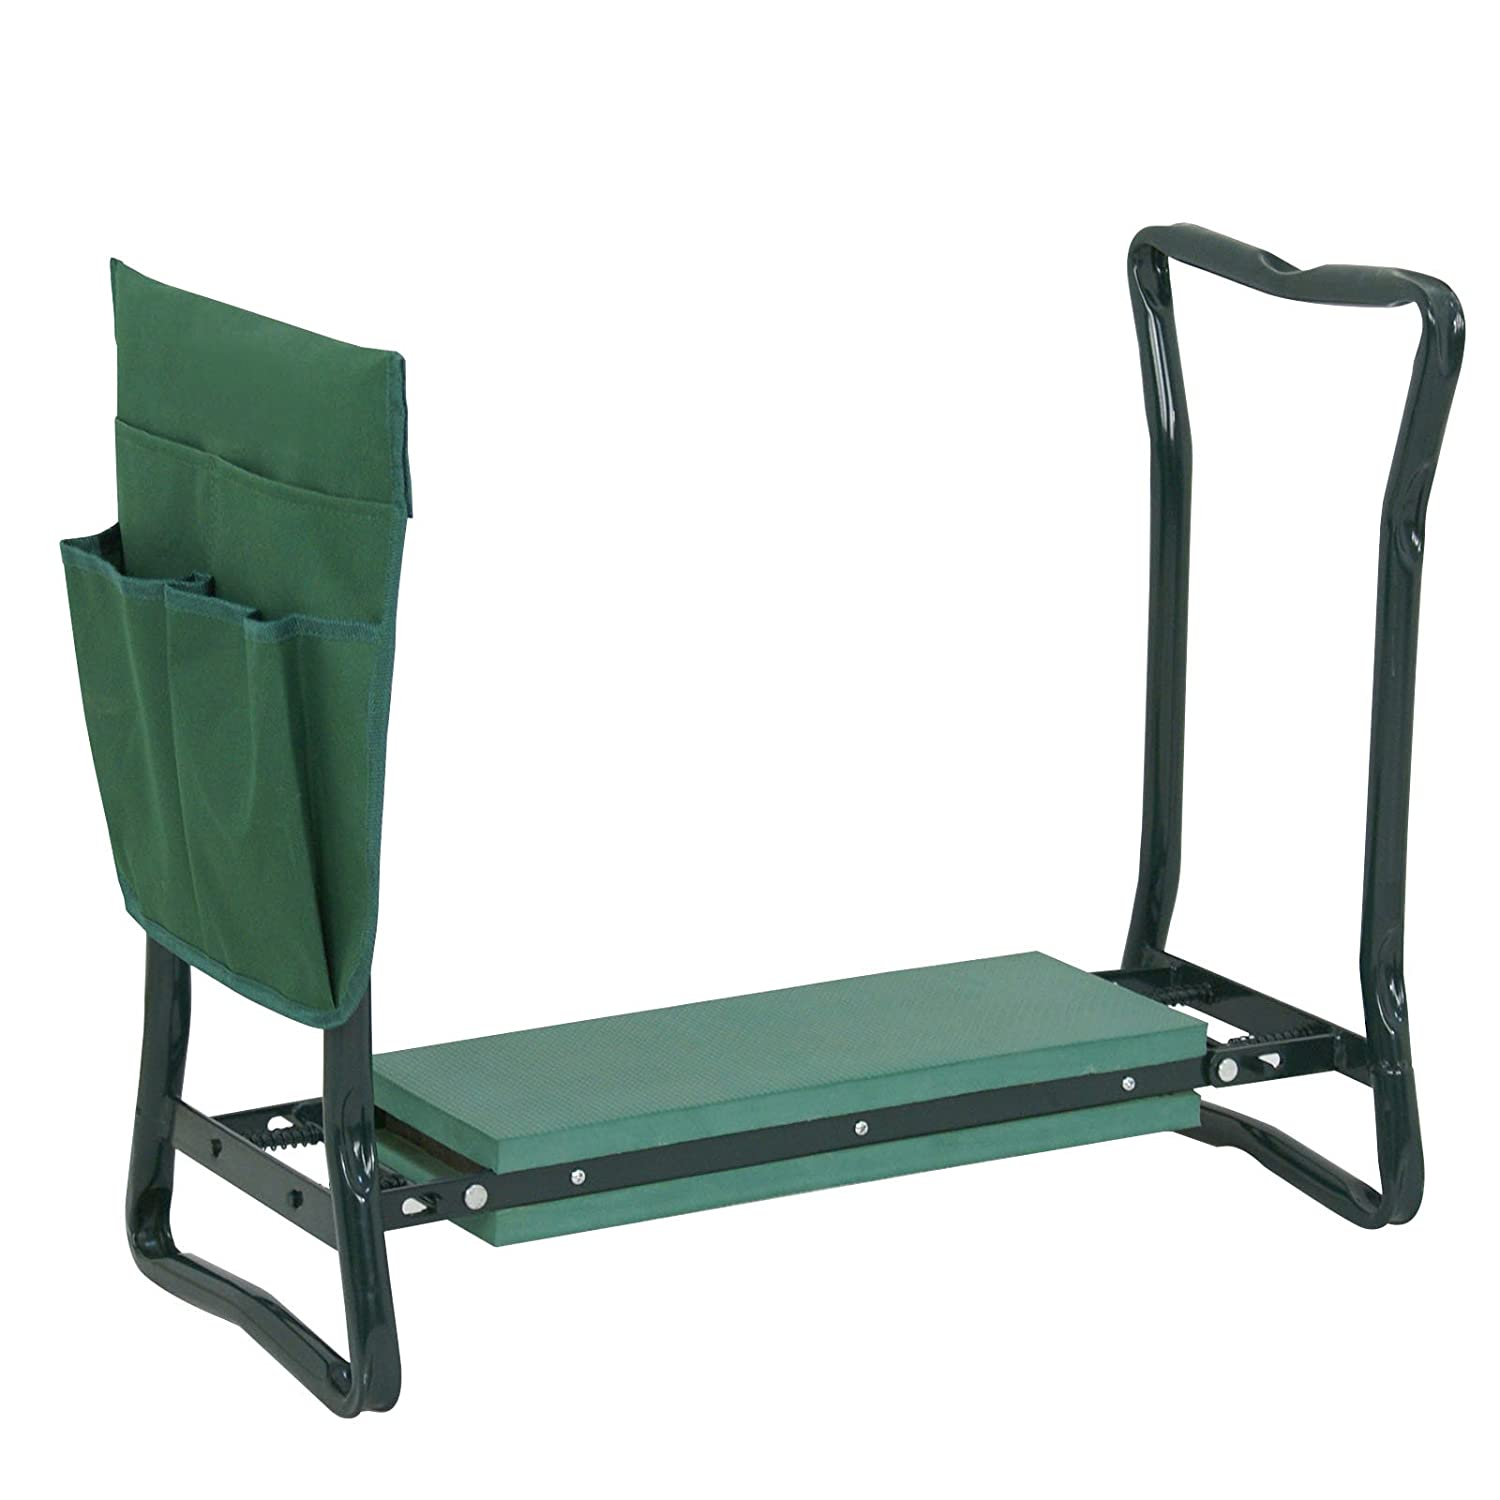 Heavy Duty Yard Gardening Chair with Soft Kneeling Pad,Green Multi-use Pouch Smartxchoices Folding Garden Kneeler Seat Garden Bench Stool with Handles